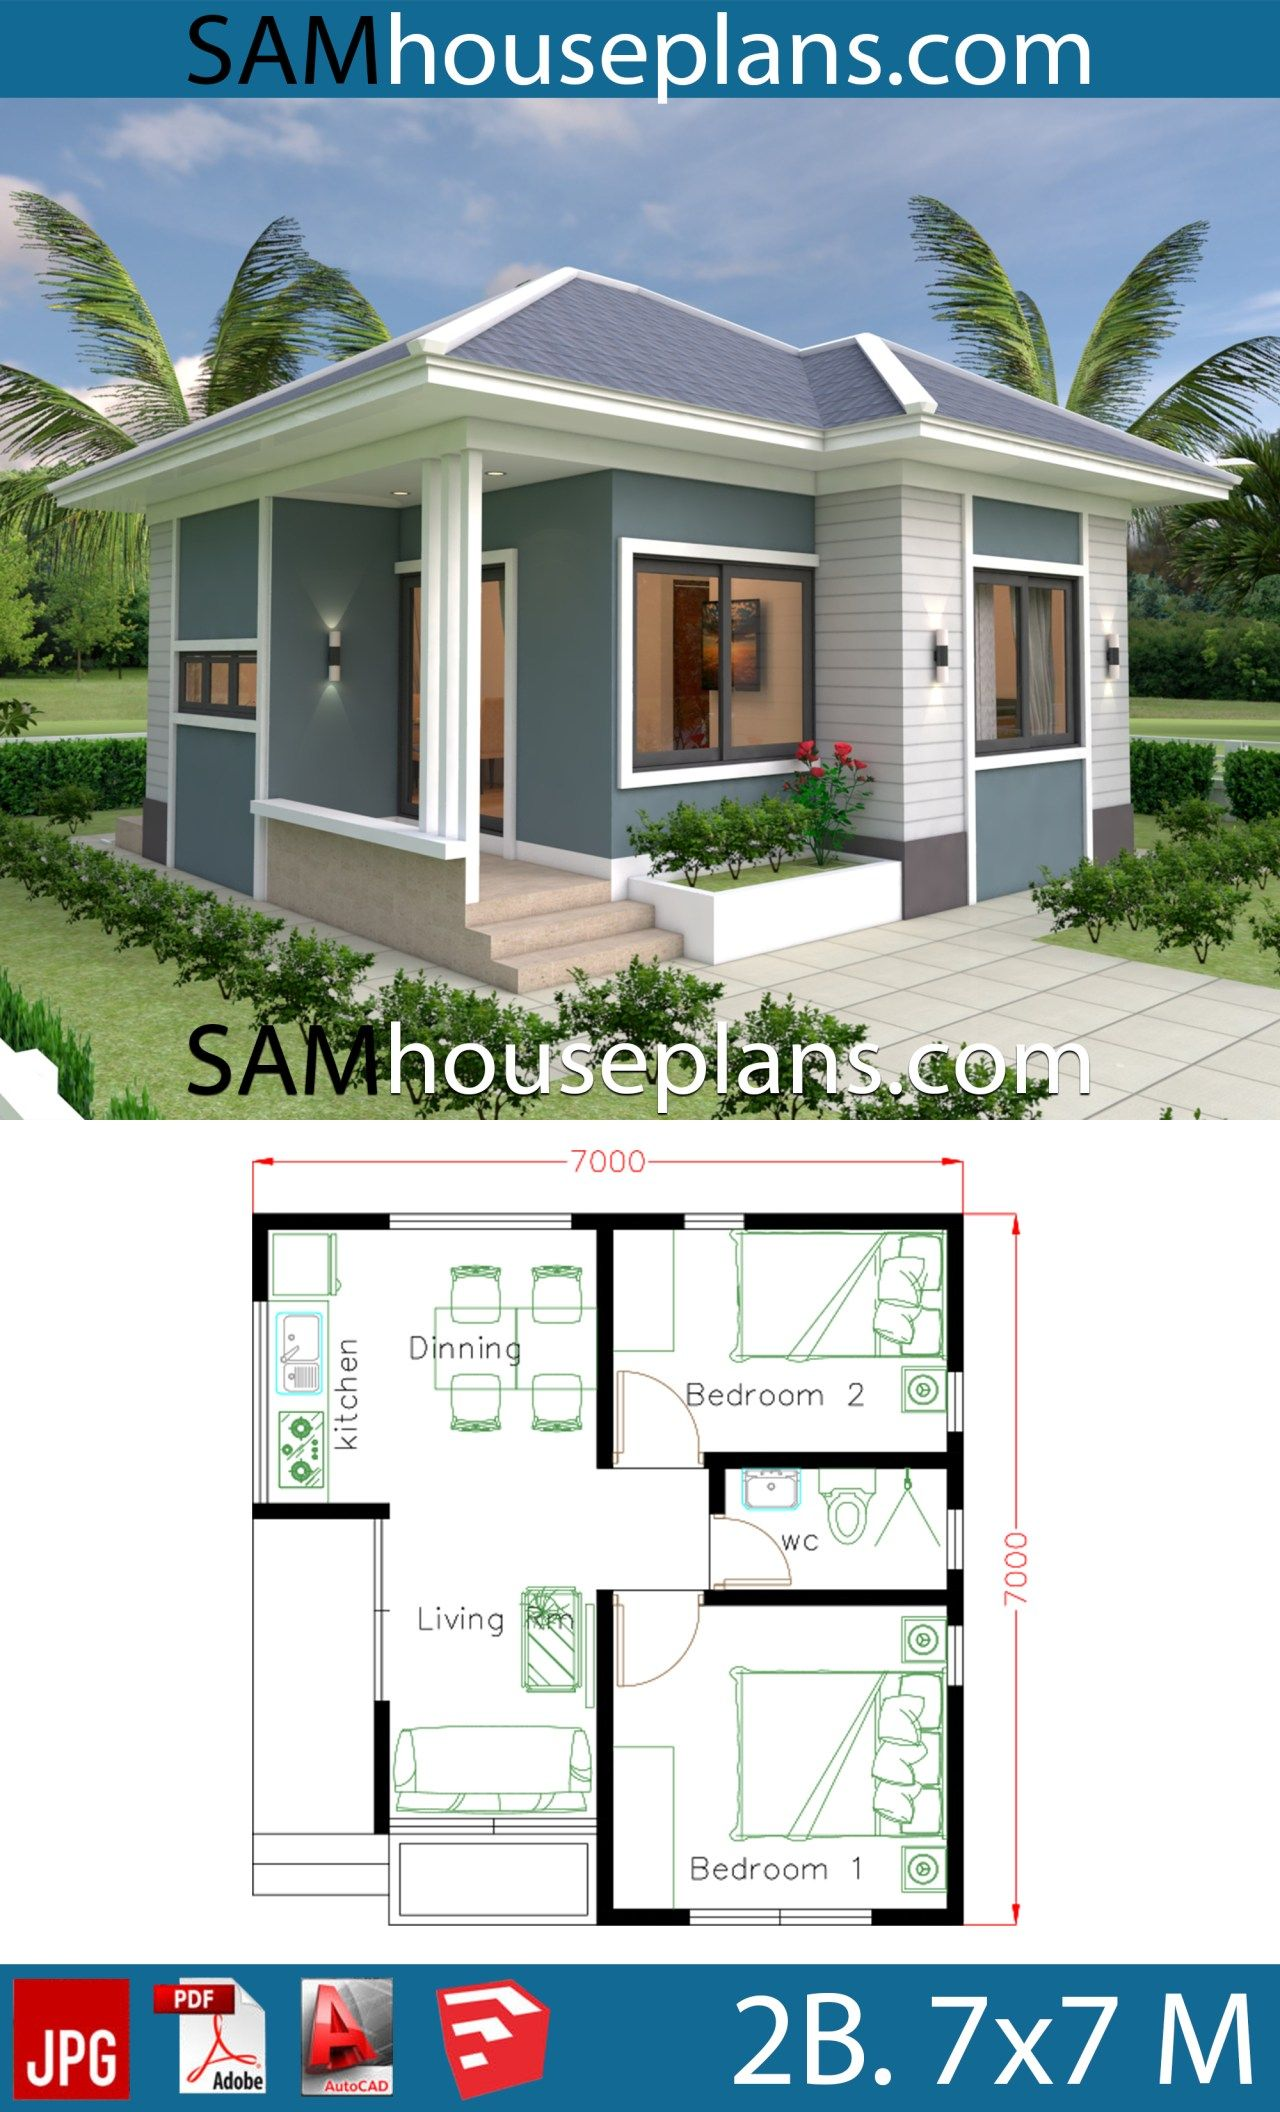 House Plans 7x7 With 2 Bedrooms Full Plans Small House Design Plans Small House Design Exterior Best Small House Designs